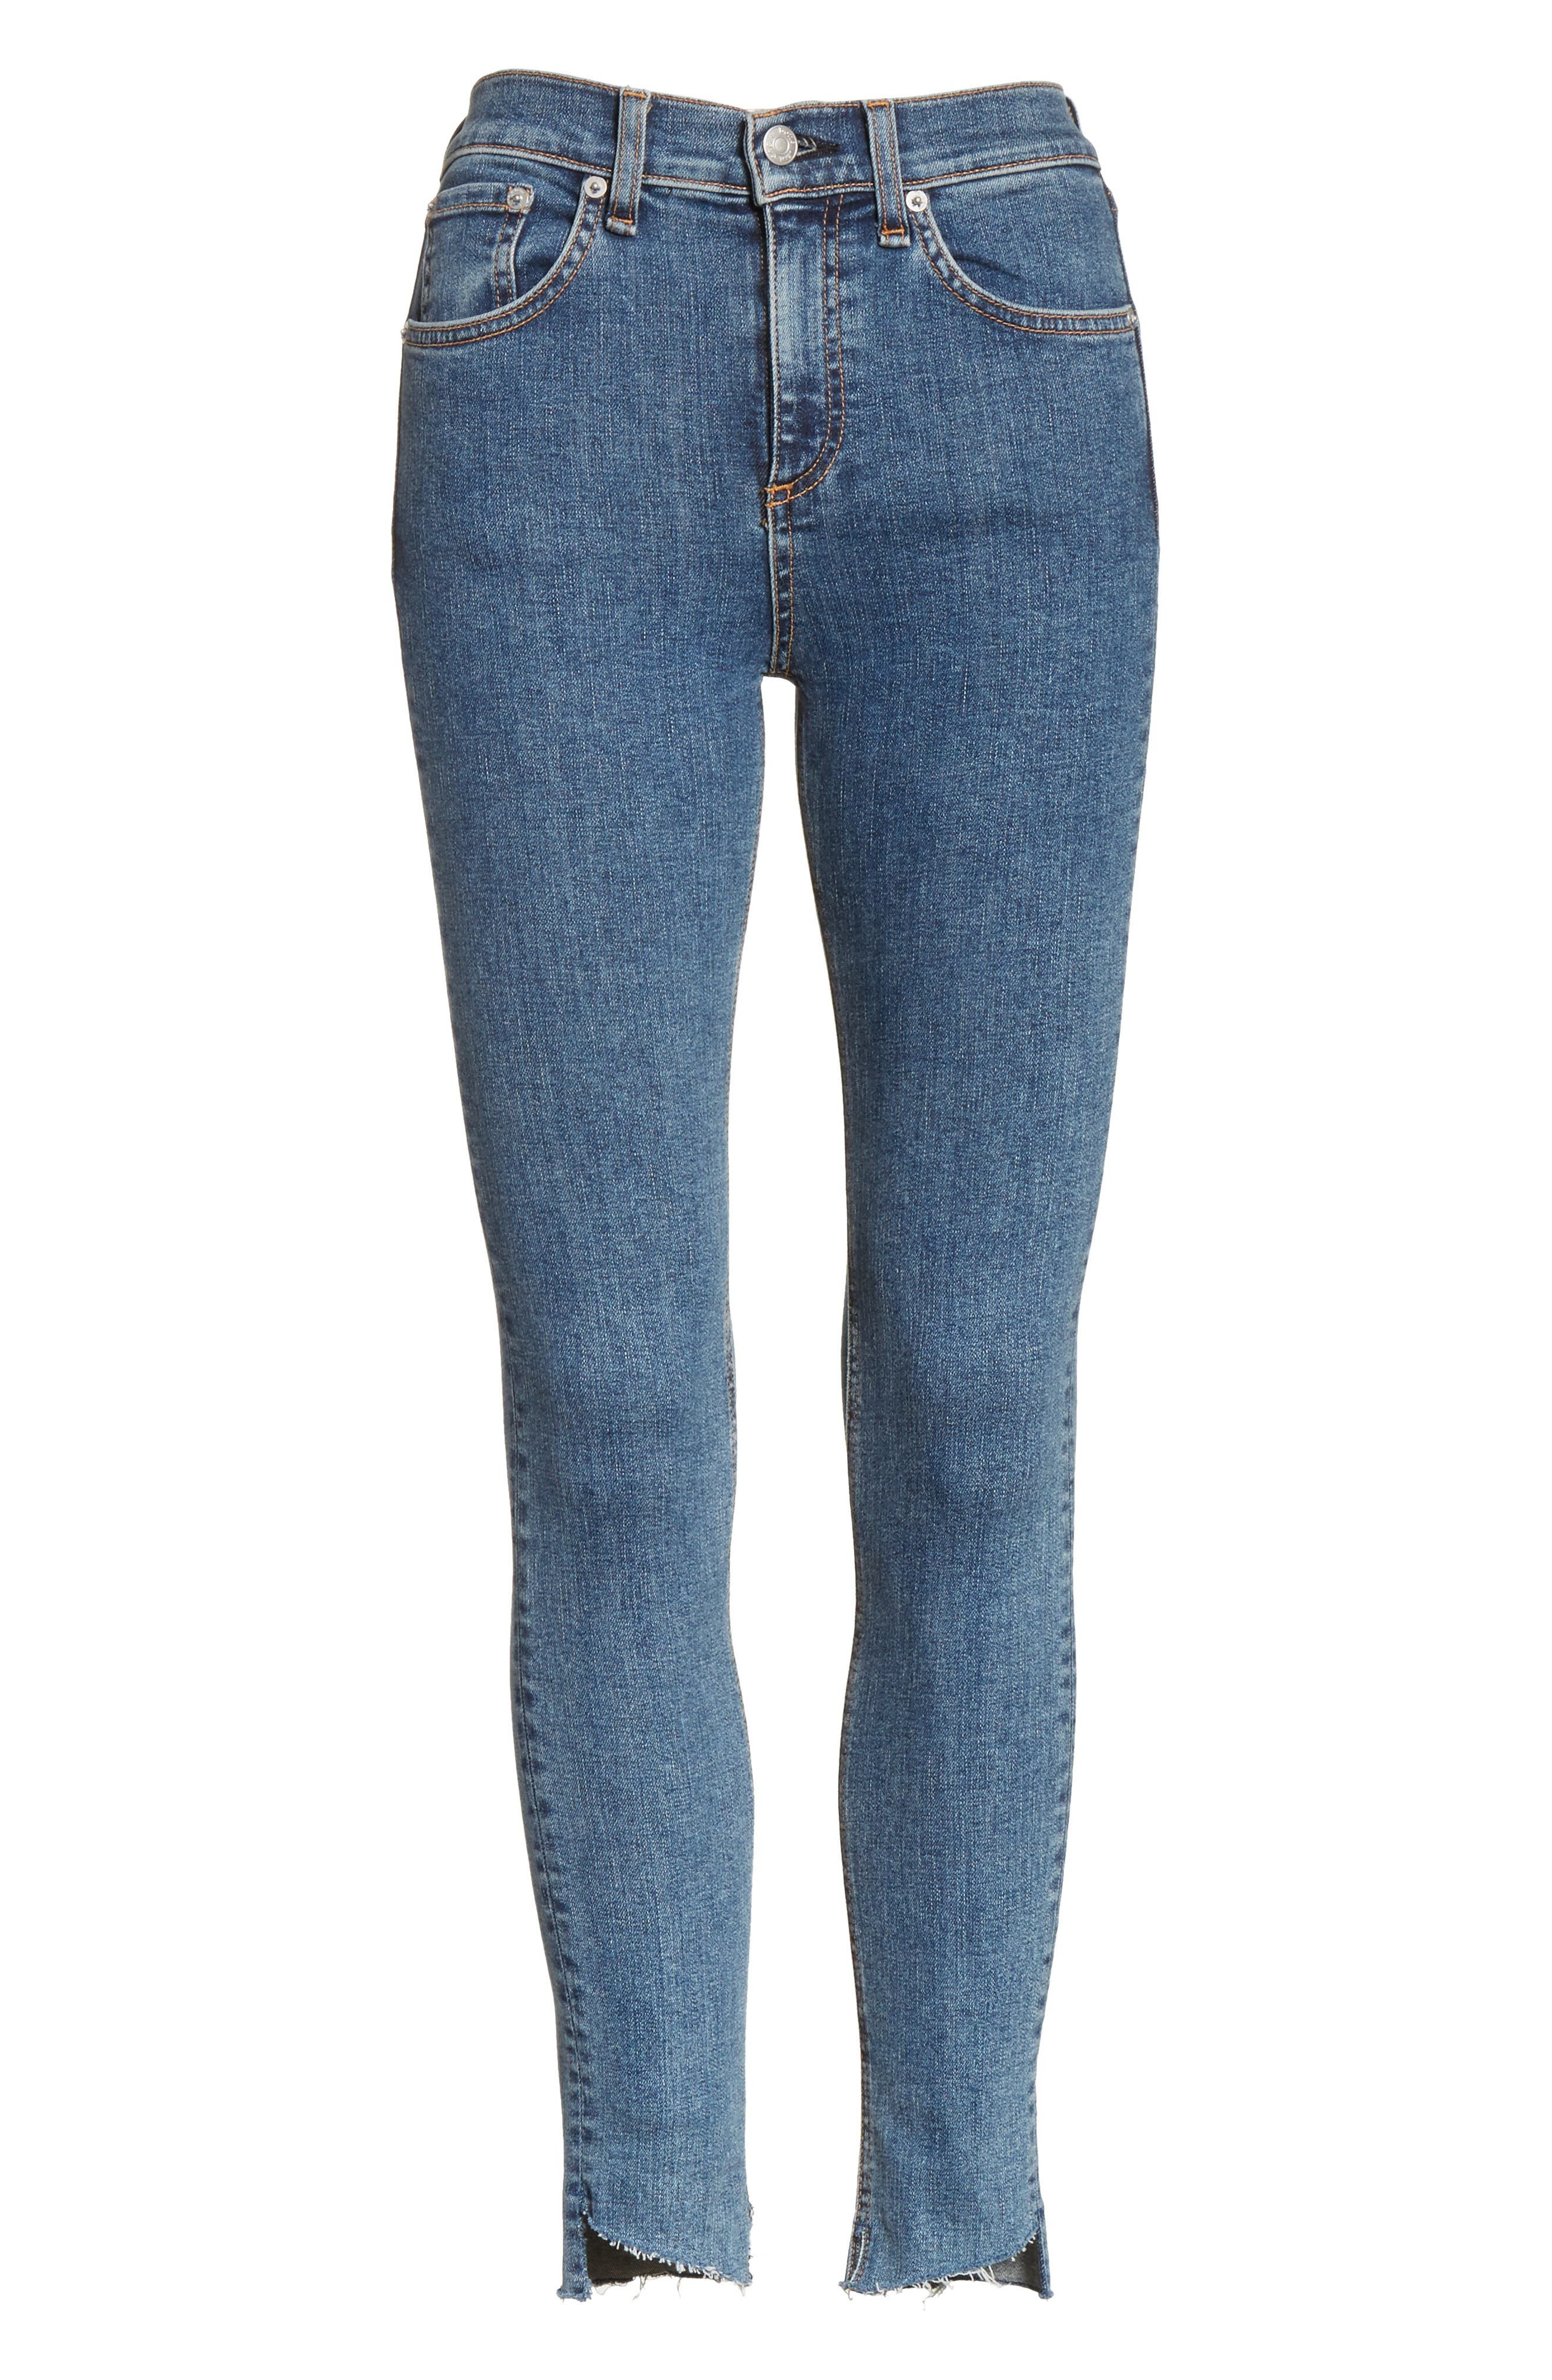 High Waist Ankle Skinny Jeans,                             Alternate thumbnail 6, color,                             420